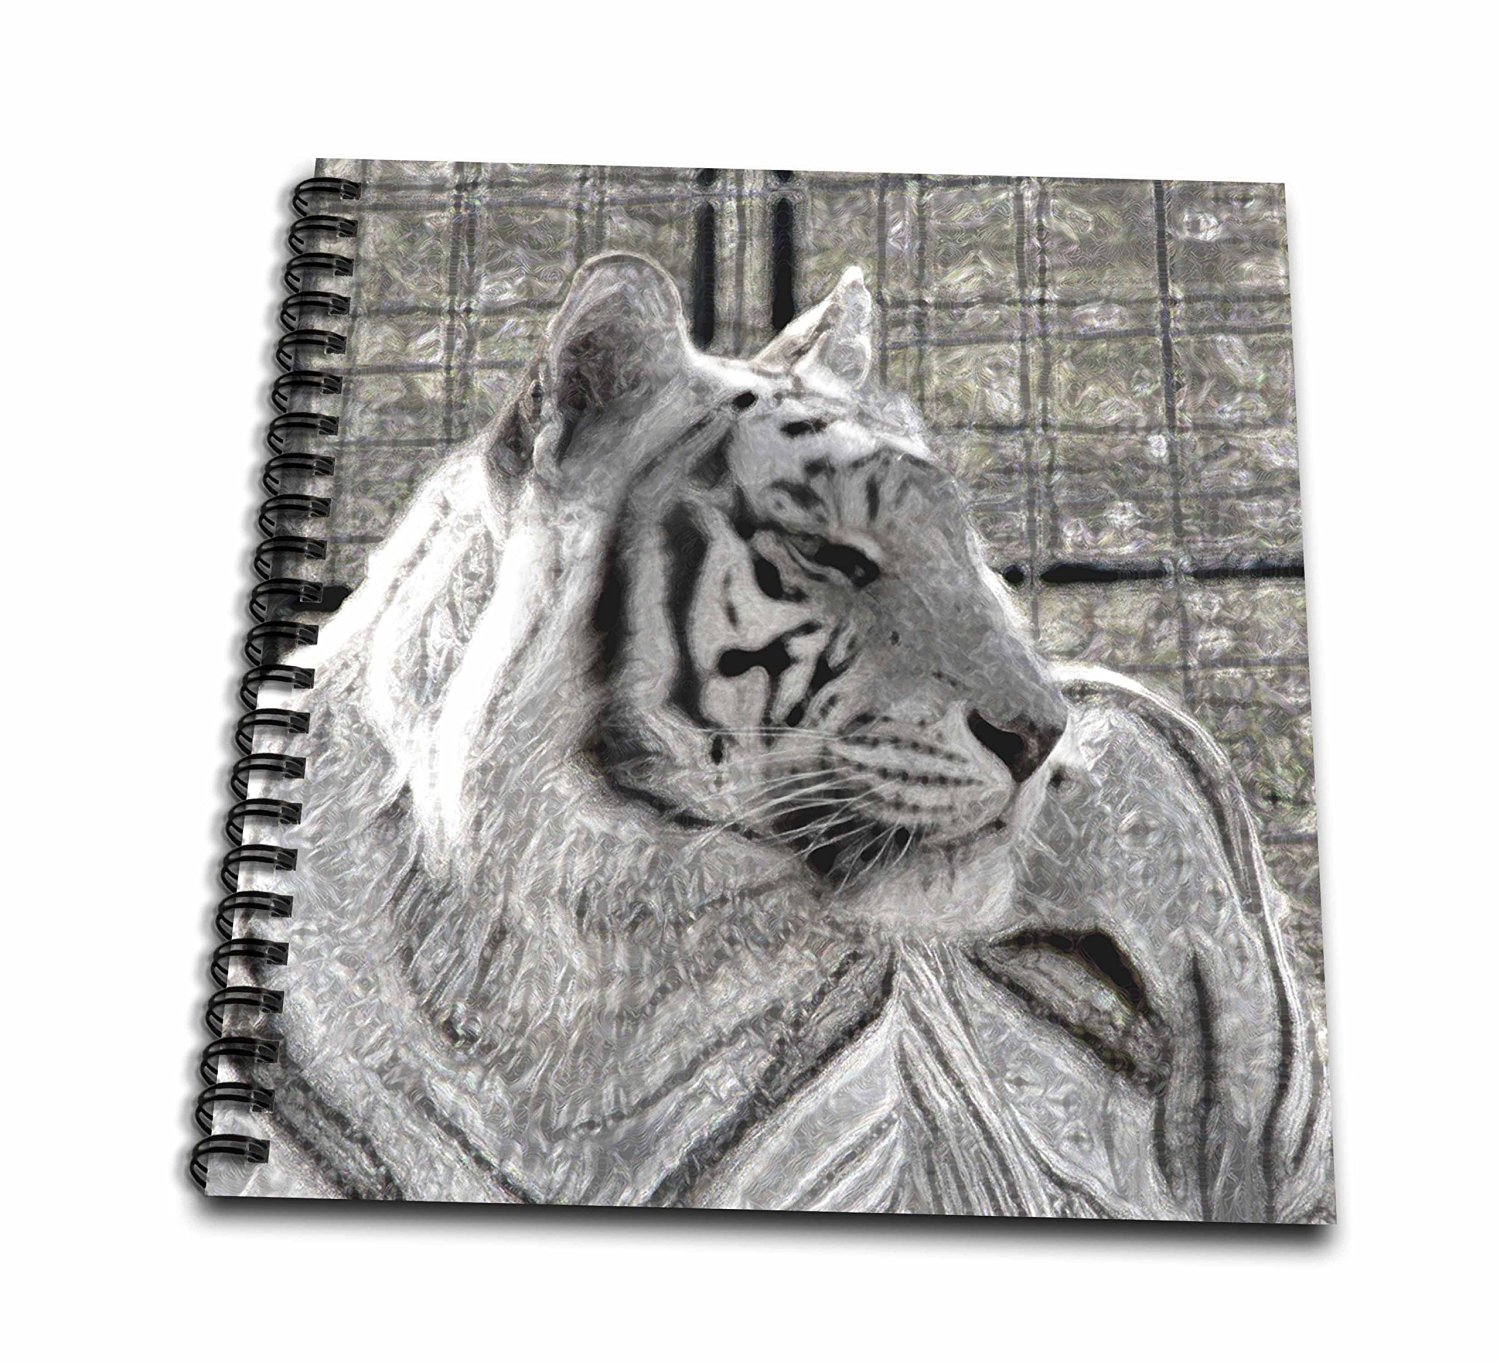 Susans Zoo Crew Animals - white tiger looking right black and white sparkle - Memory Book 12 x 12 inch (db_184827_2)